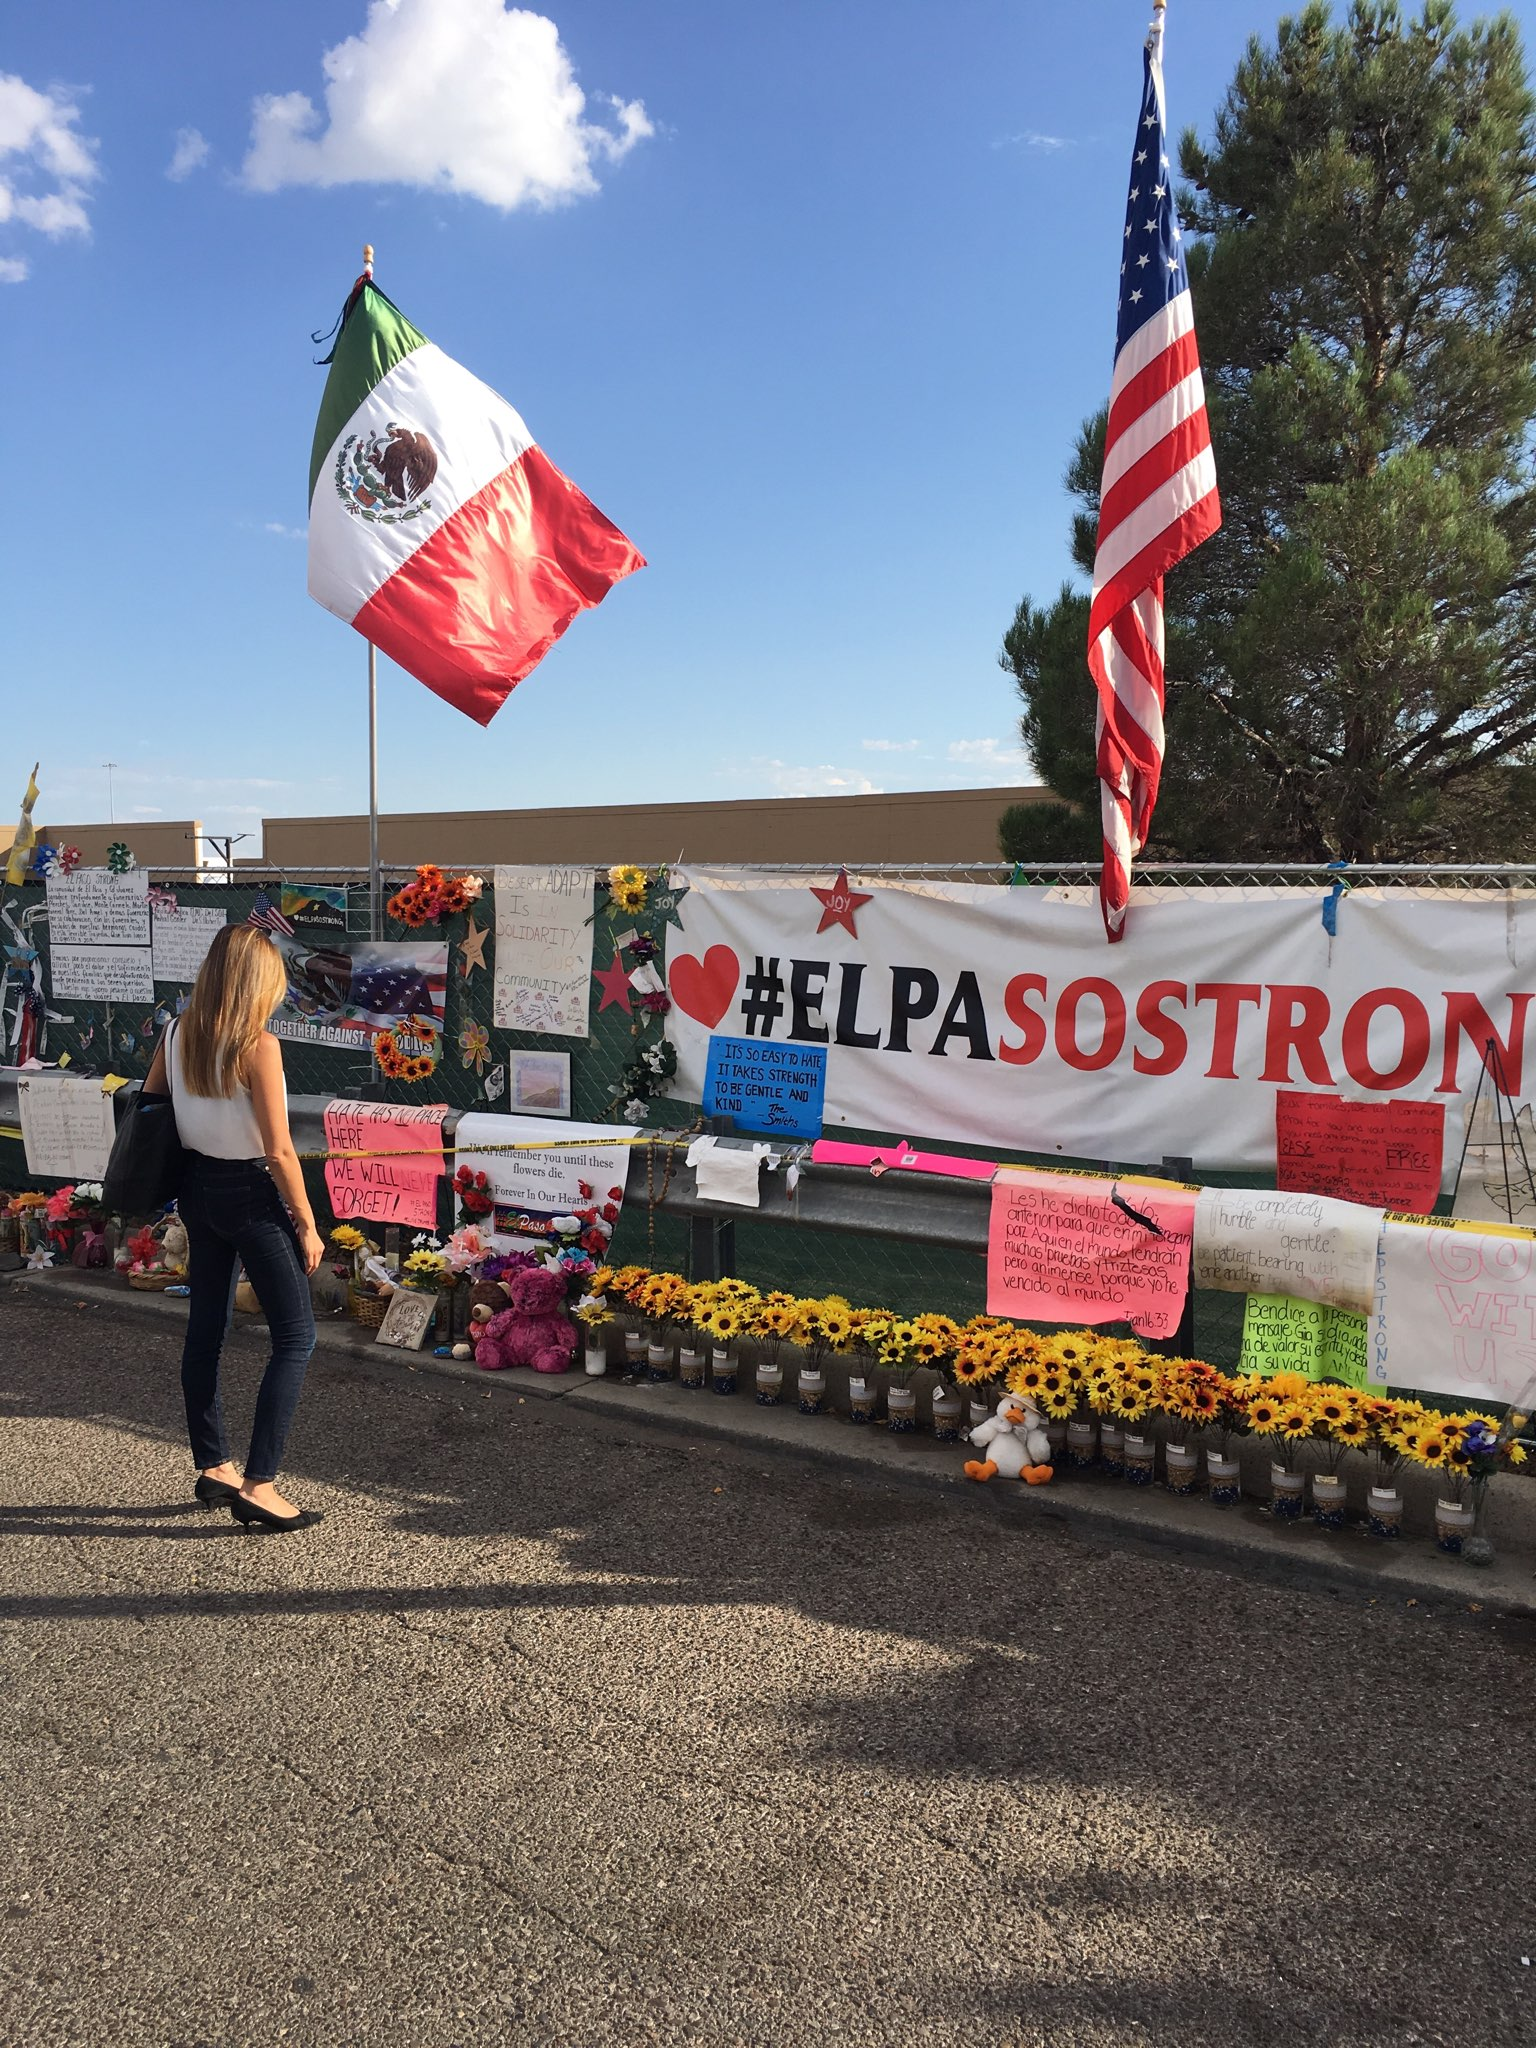 Visiting the makeshift memorial at the Walmart in El Paso where 22 innocent people died in a mass shooting